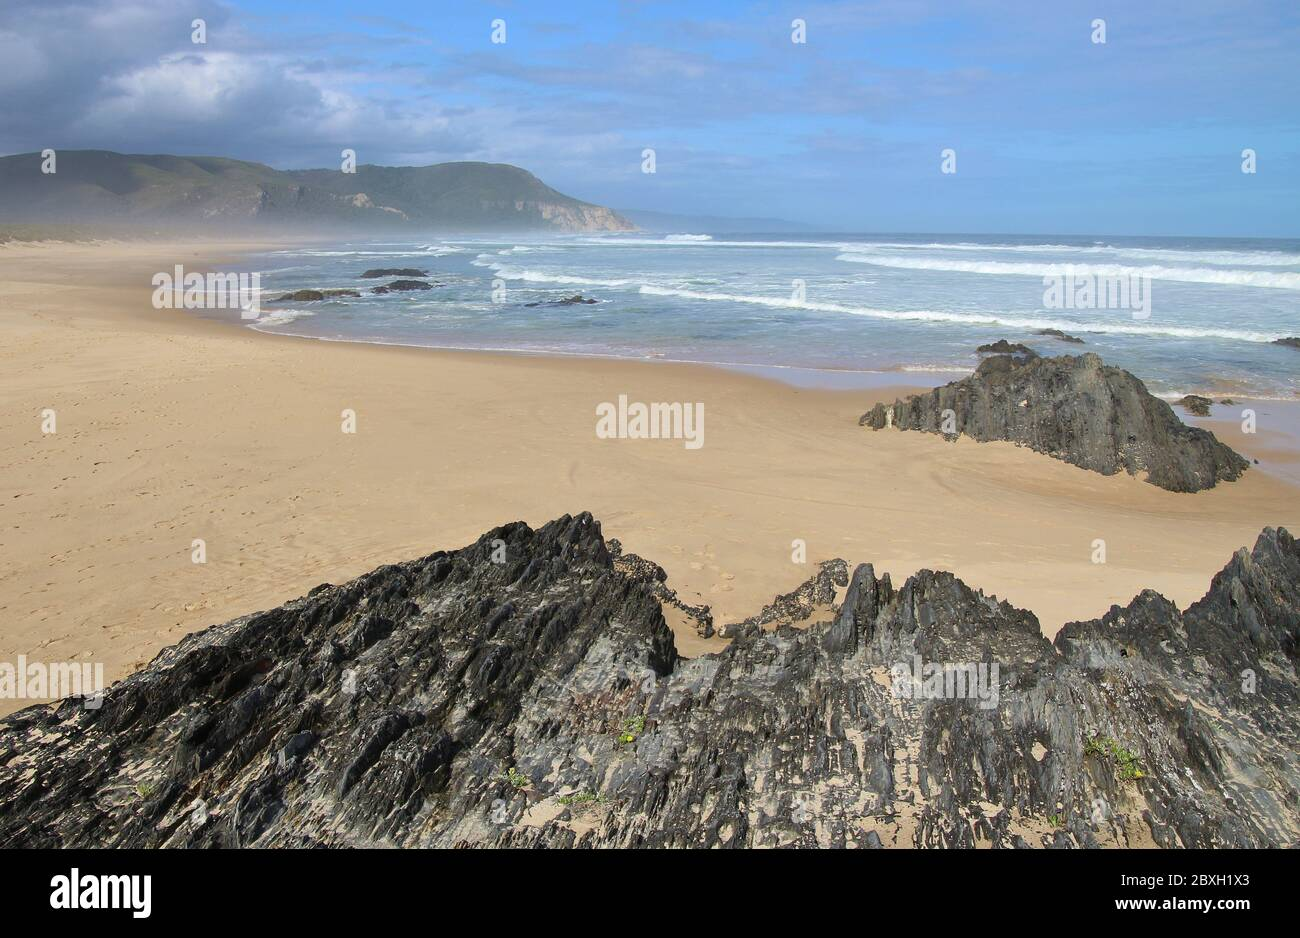 Cragged cliffs on the beach of Nature's Valley, Garden Route, South Africa, Africa. Stock Photo